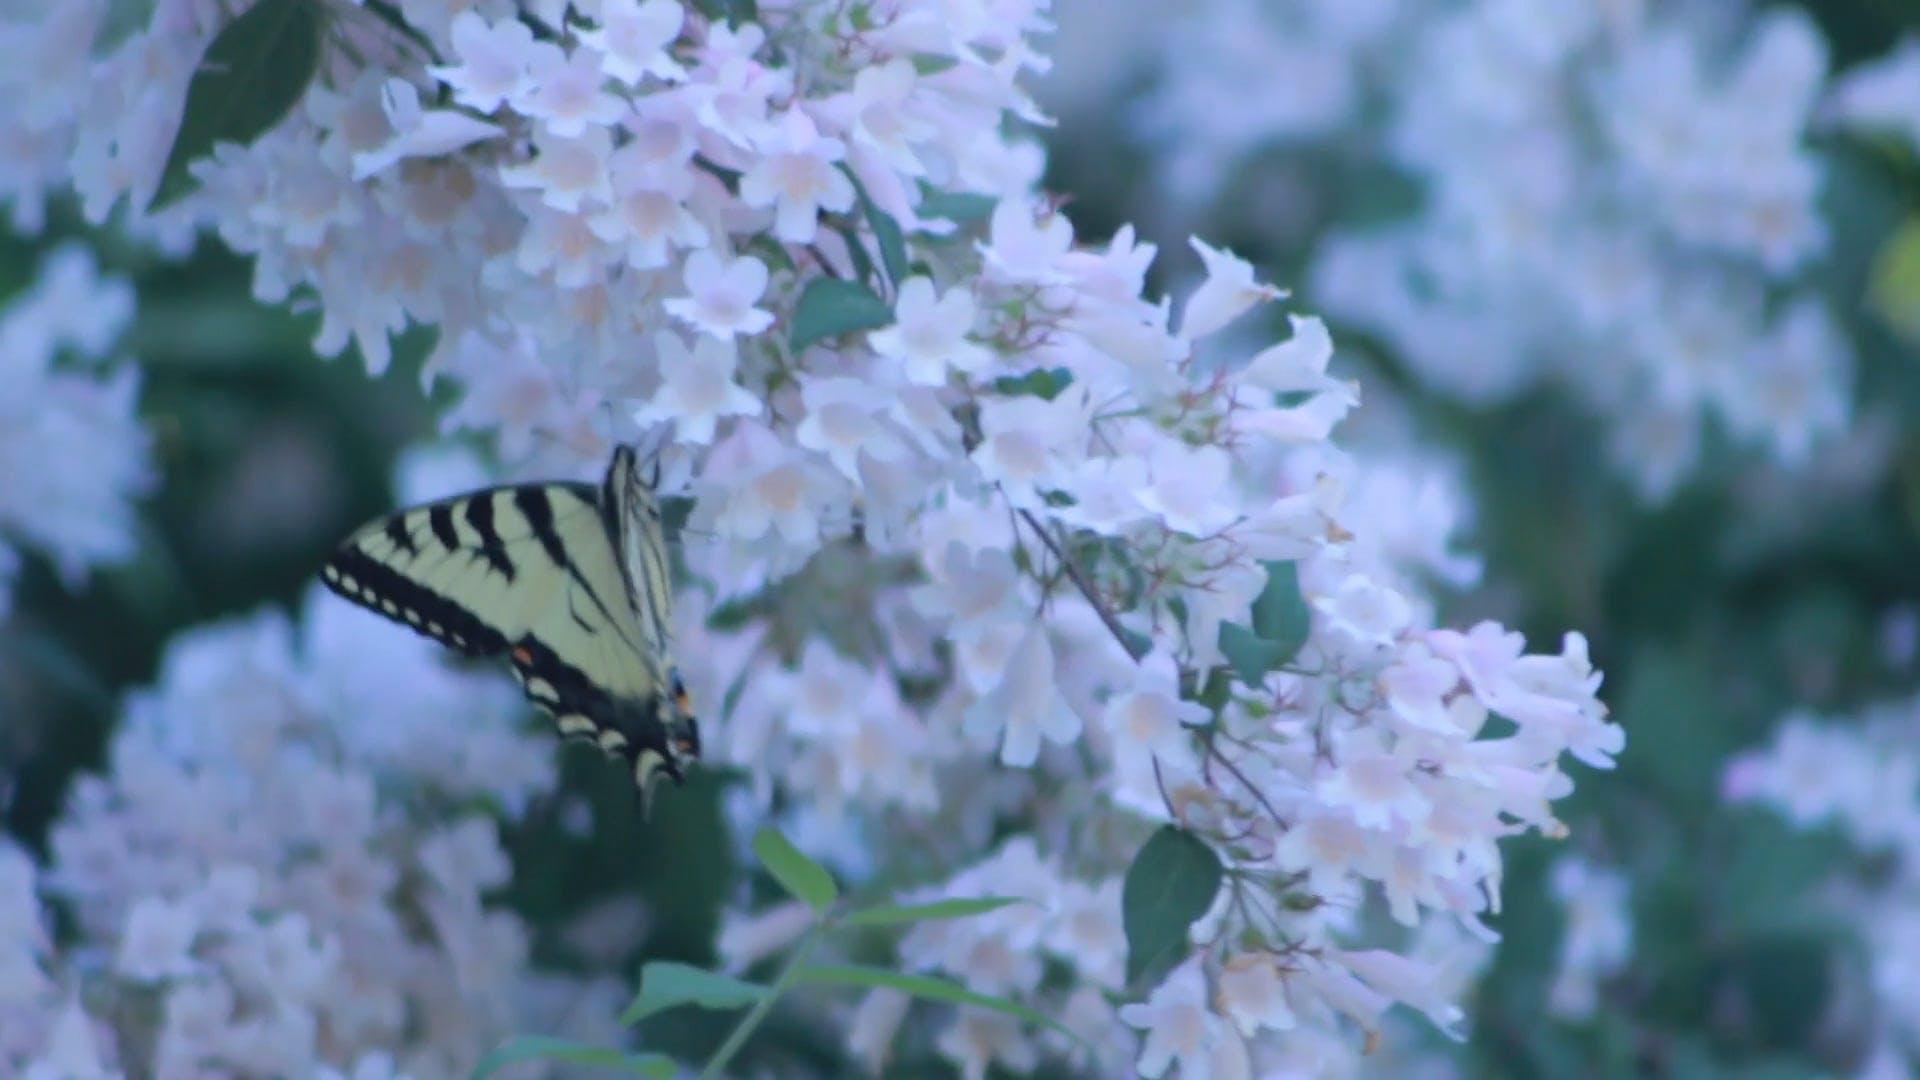 Close-Up Video of Butterfly Perched on Flower